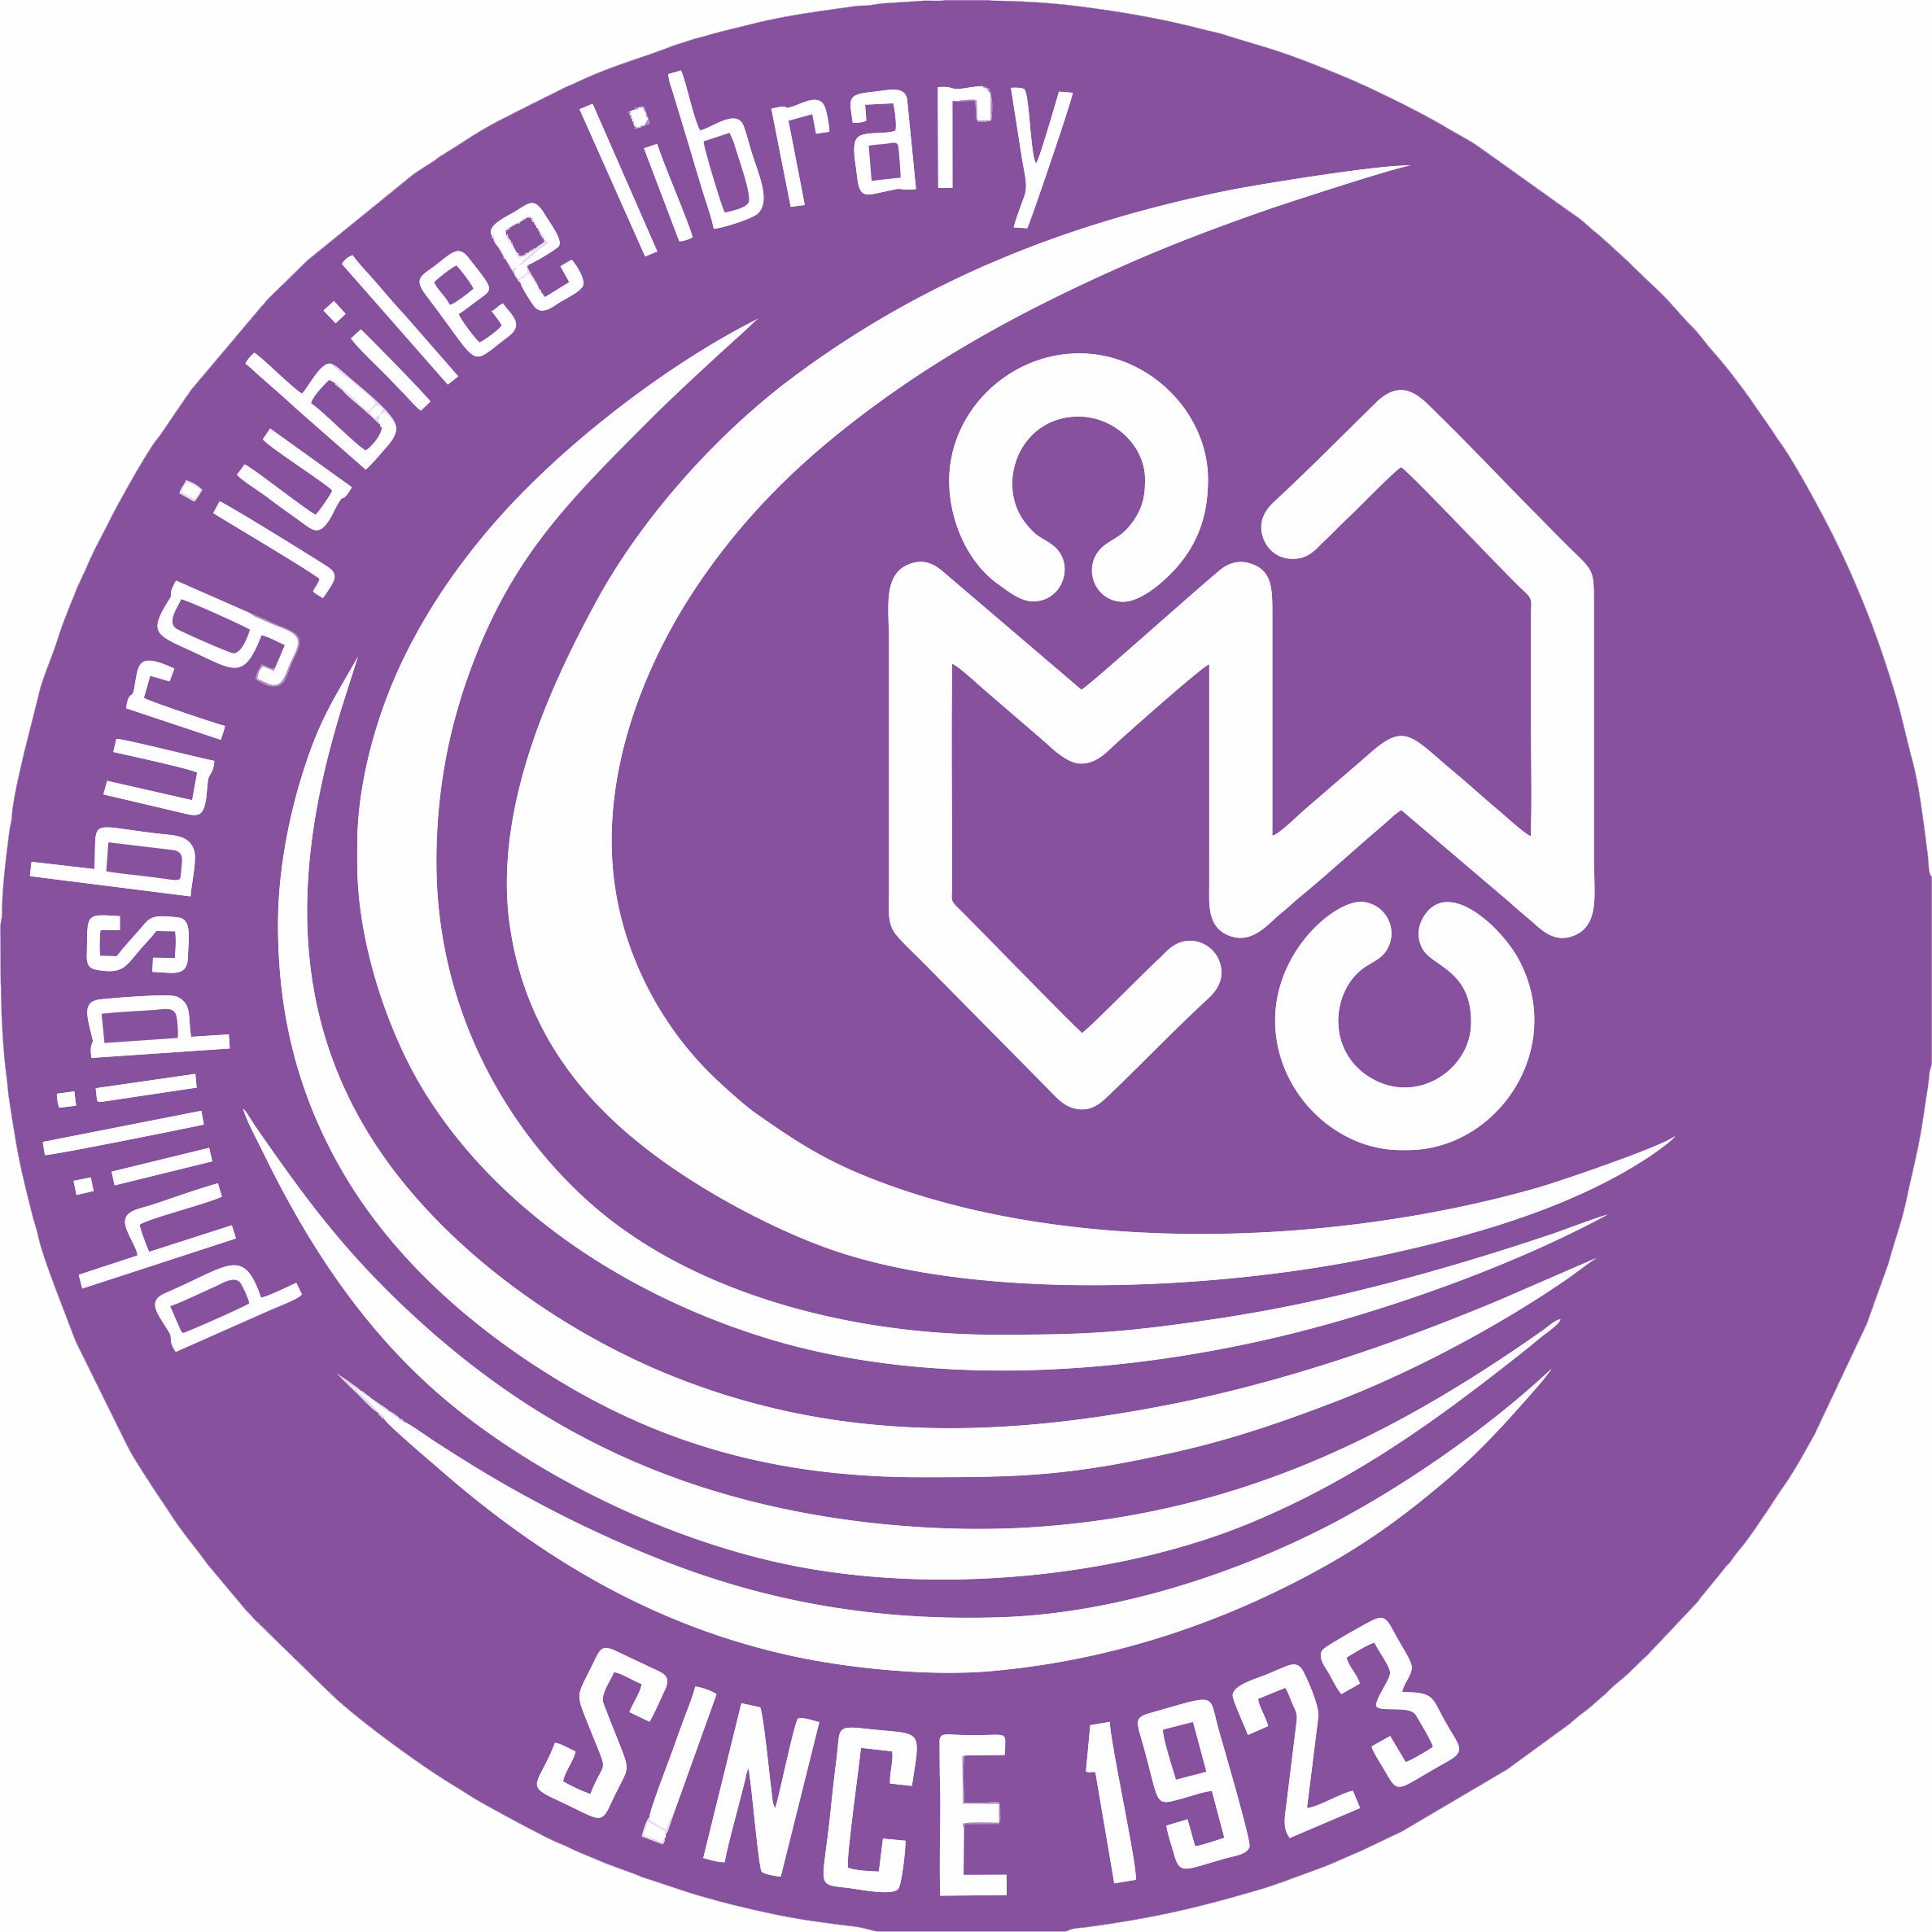 Philipsburg Jubilee Library